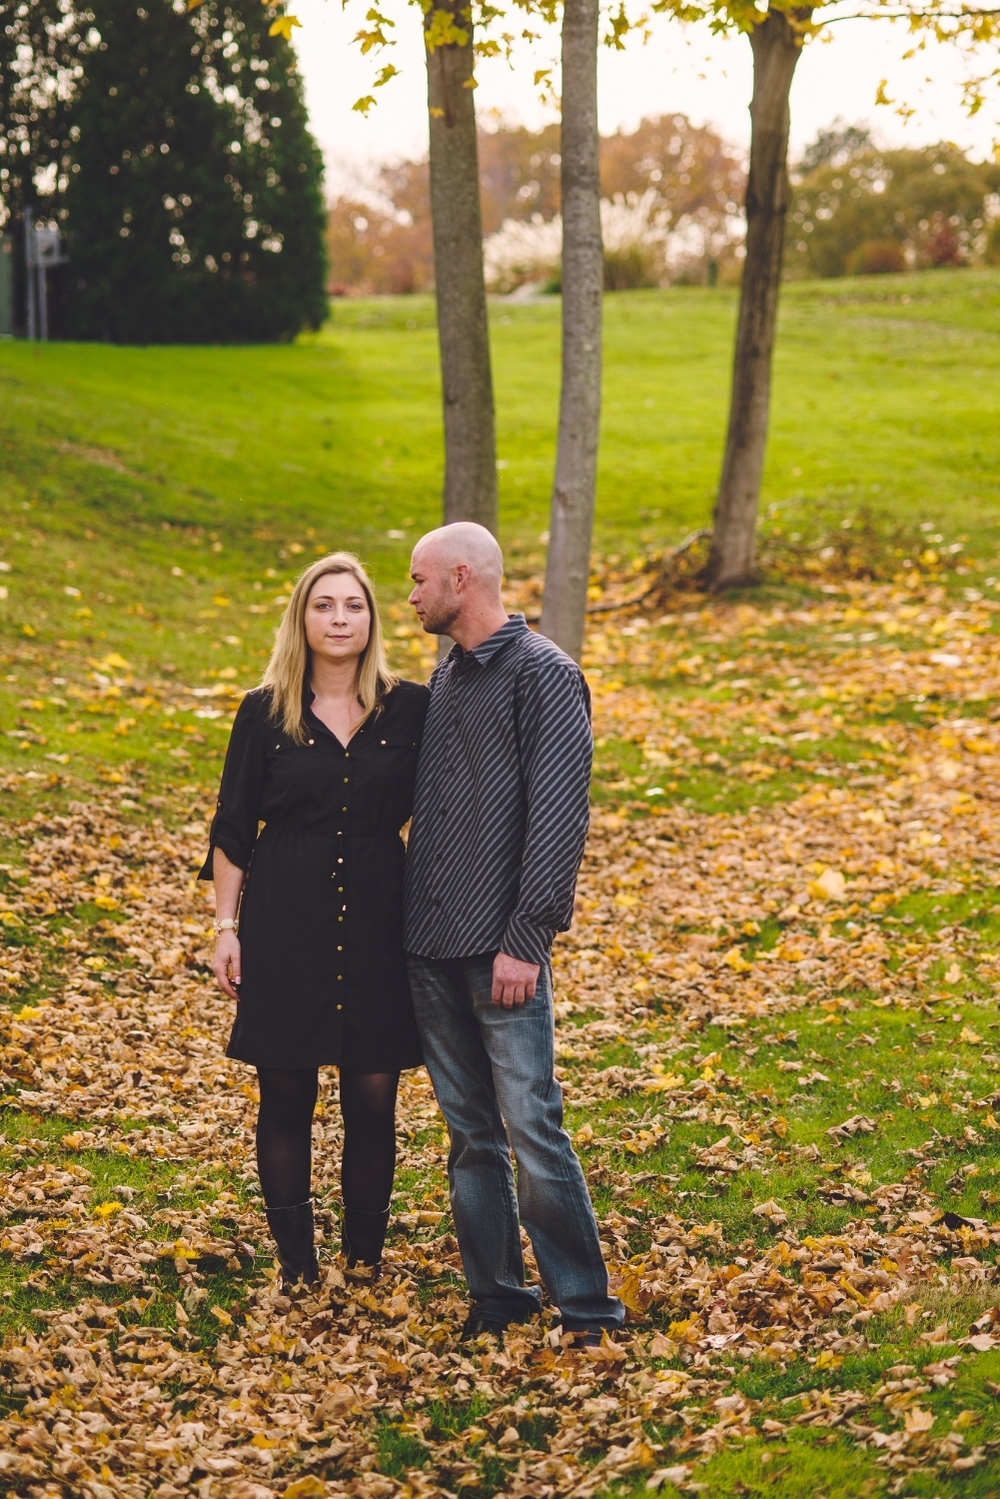 dominique-rich-engagement-photography-long-island-ny-photographer-autumn-leaves-vanderbuilt-museum-0004.jpg